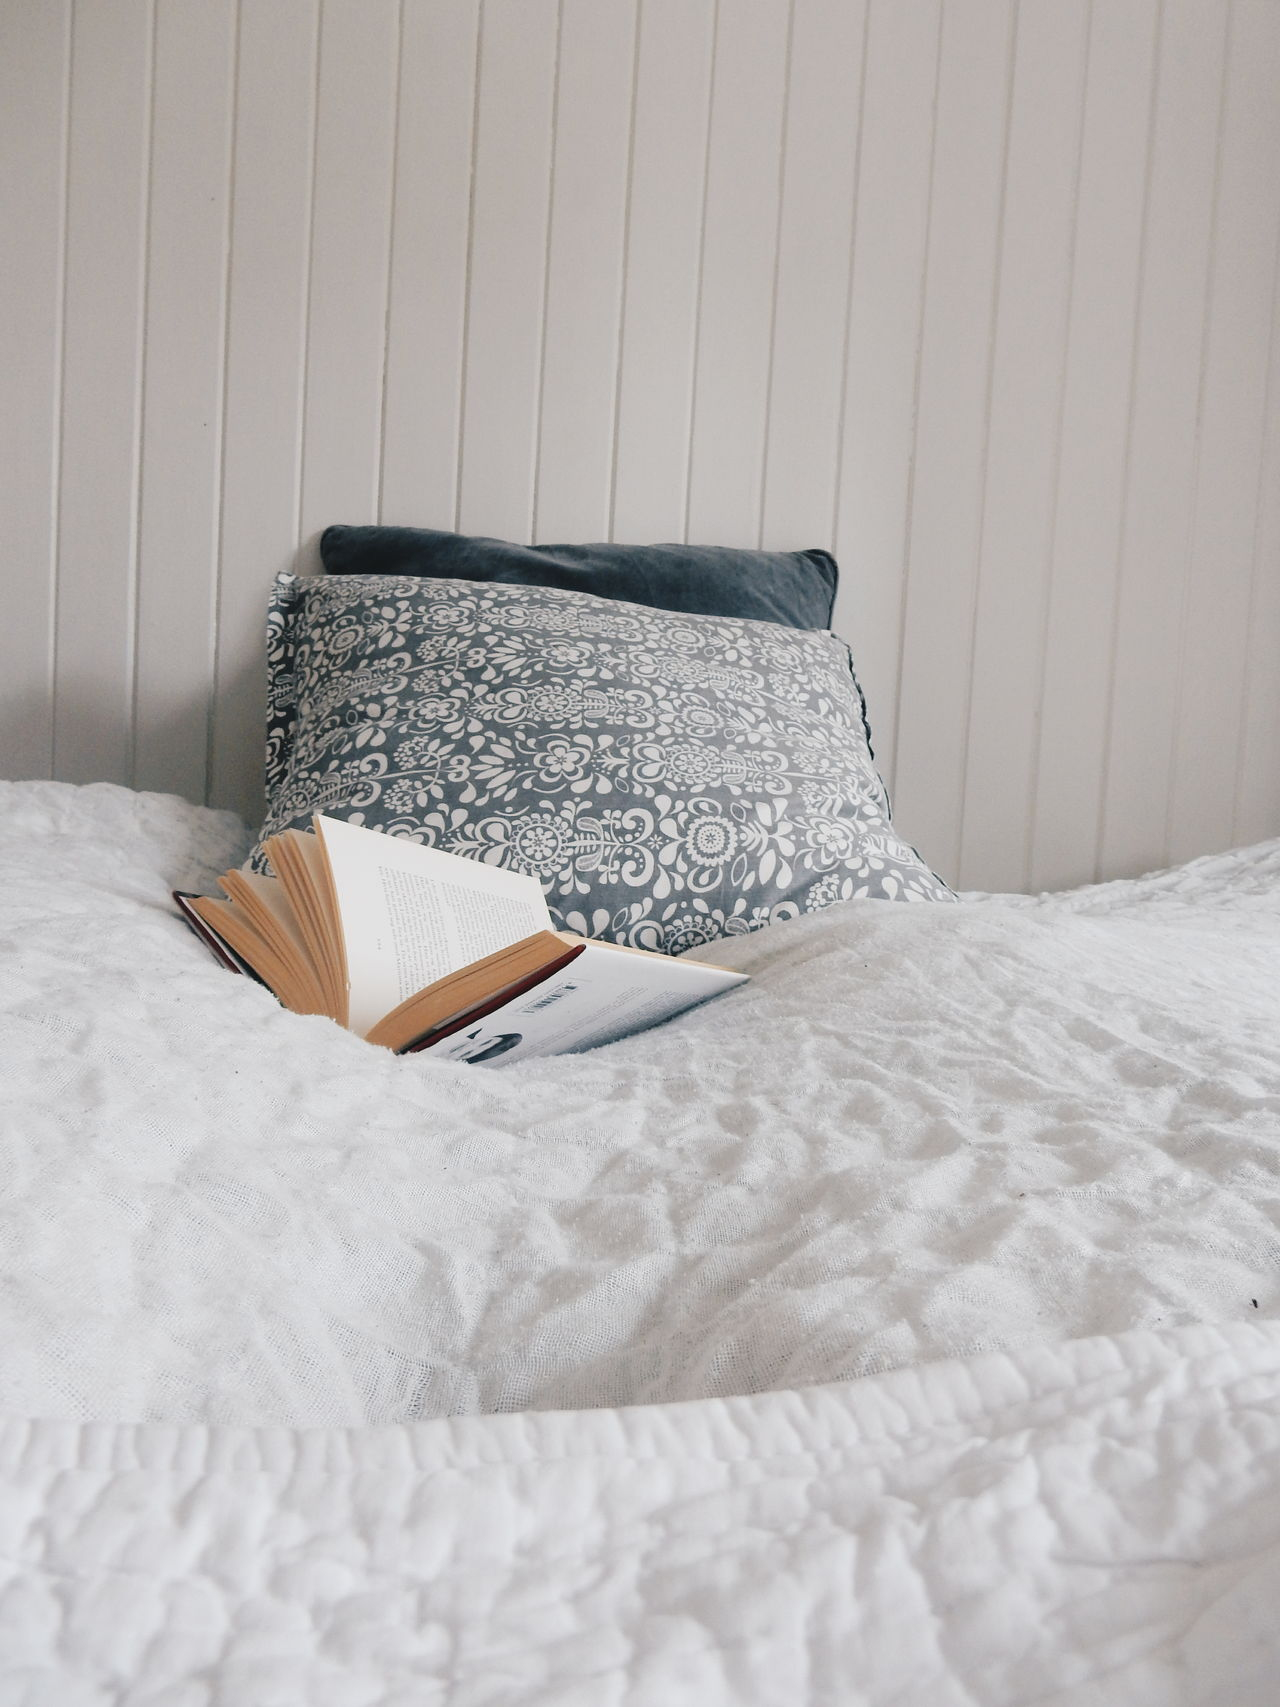 Novel on bed against wall at home